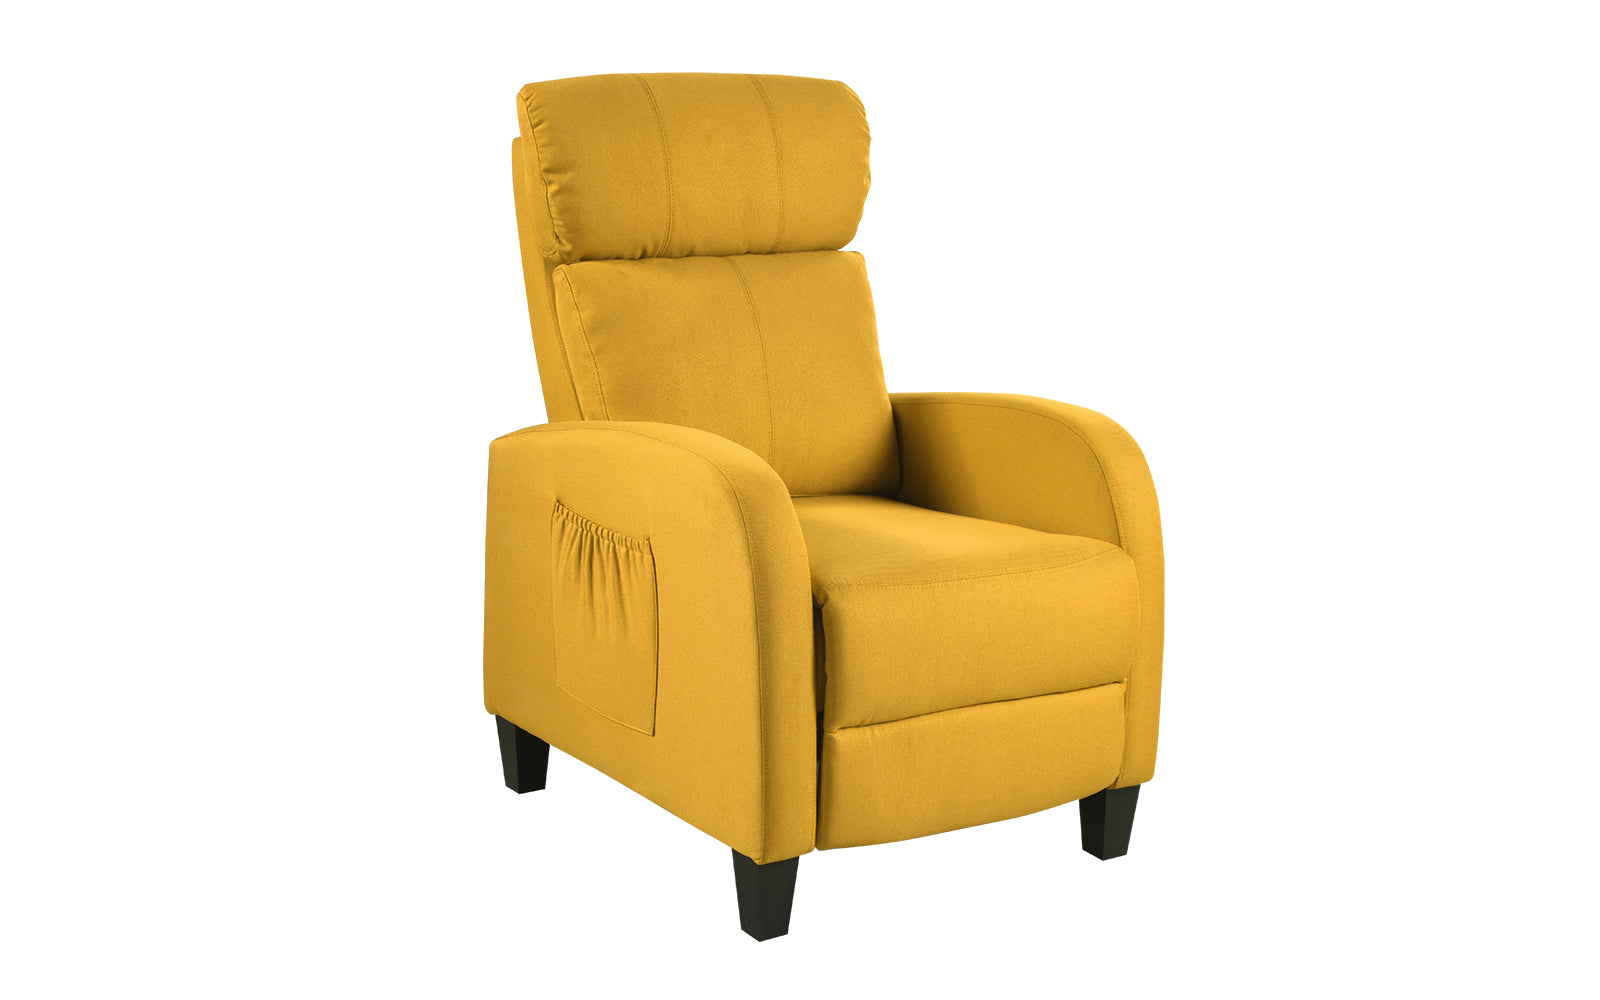 Compact Living Room Recliner Chair Image